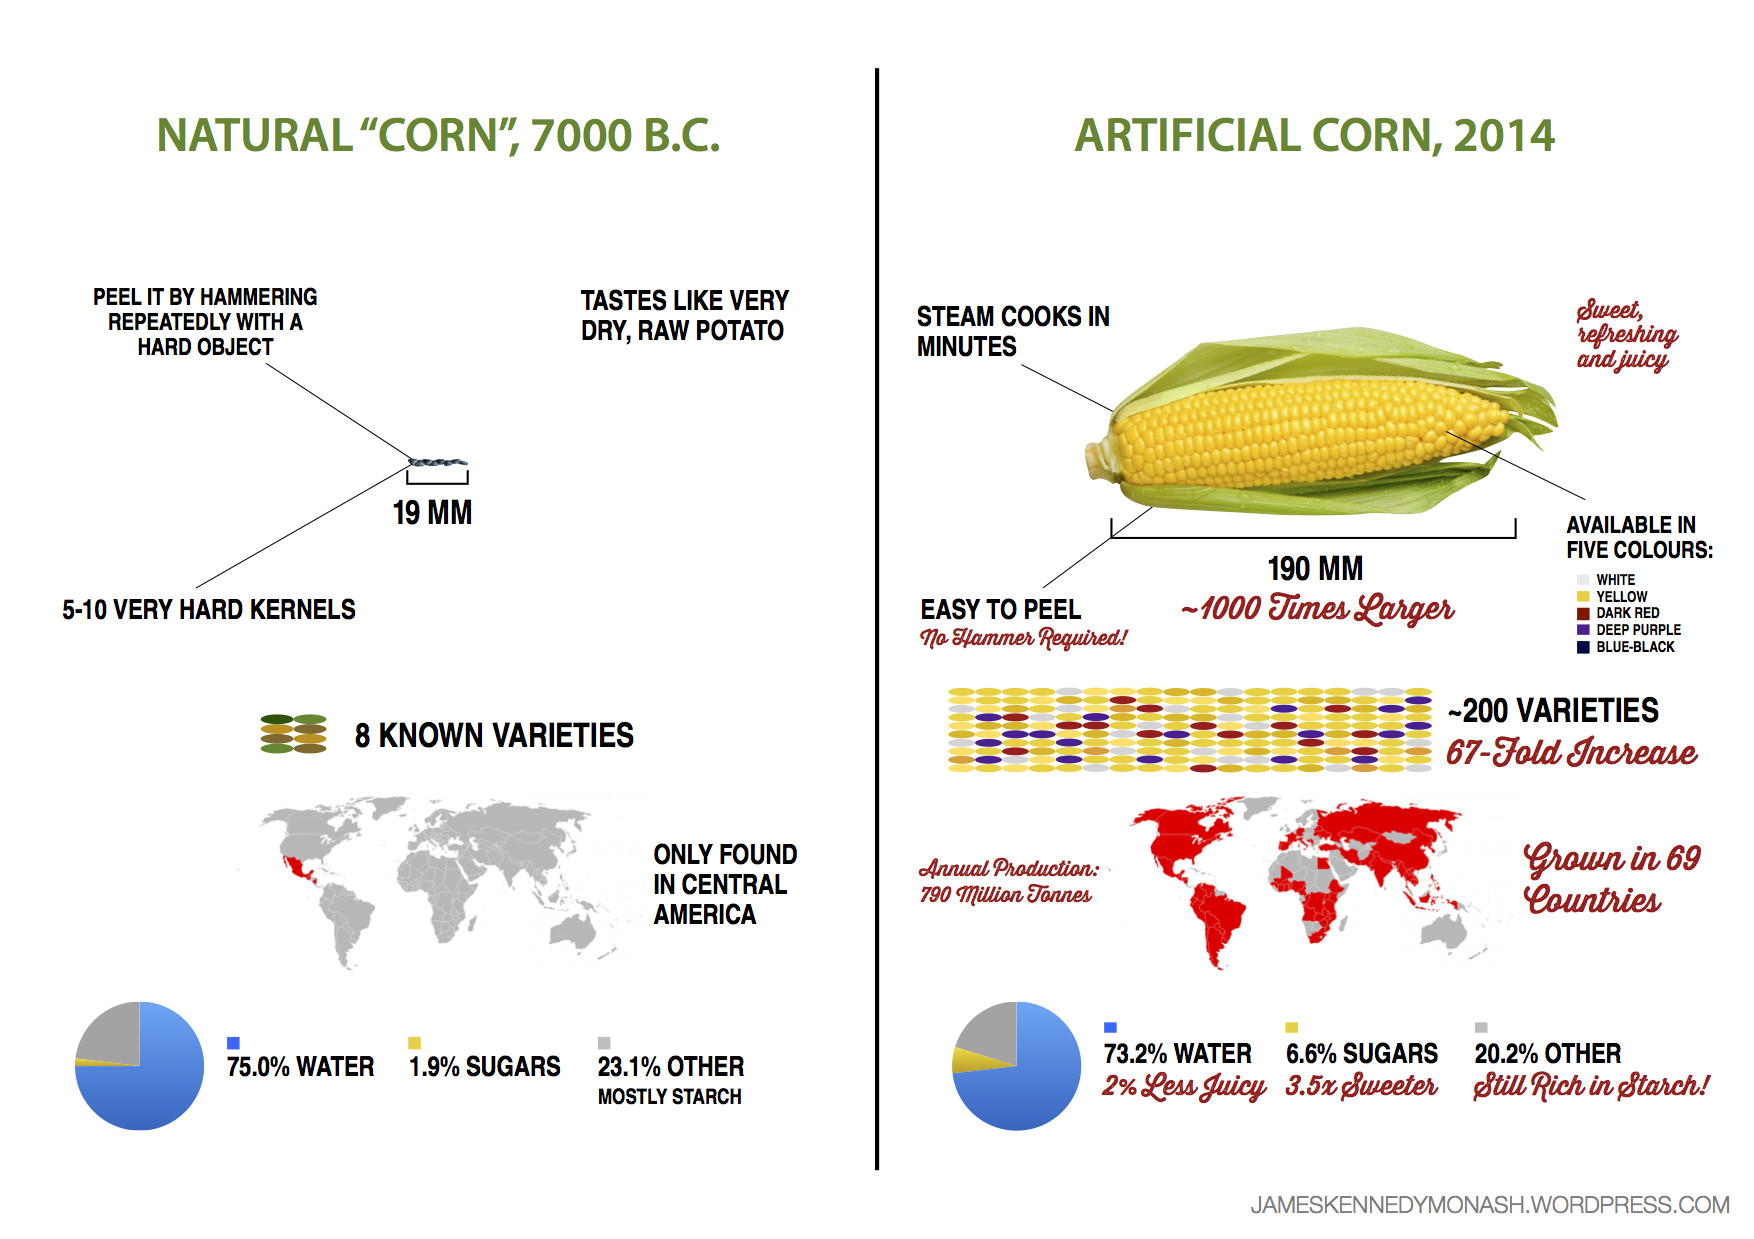 Here S What 9 000 Years Of Breeding Has Done To Corn